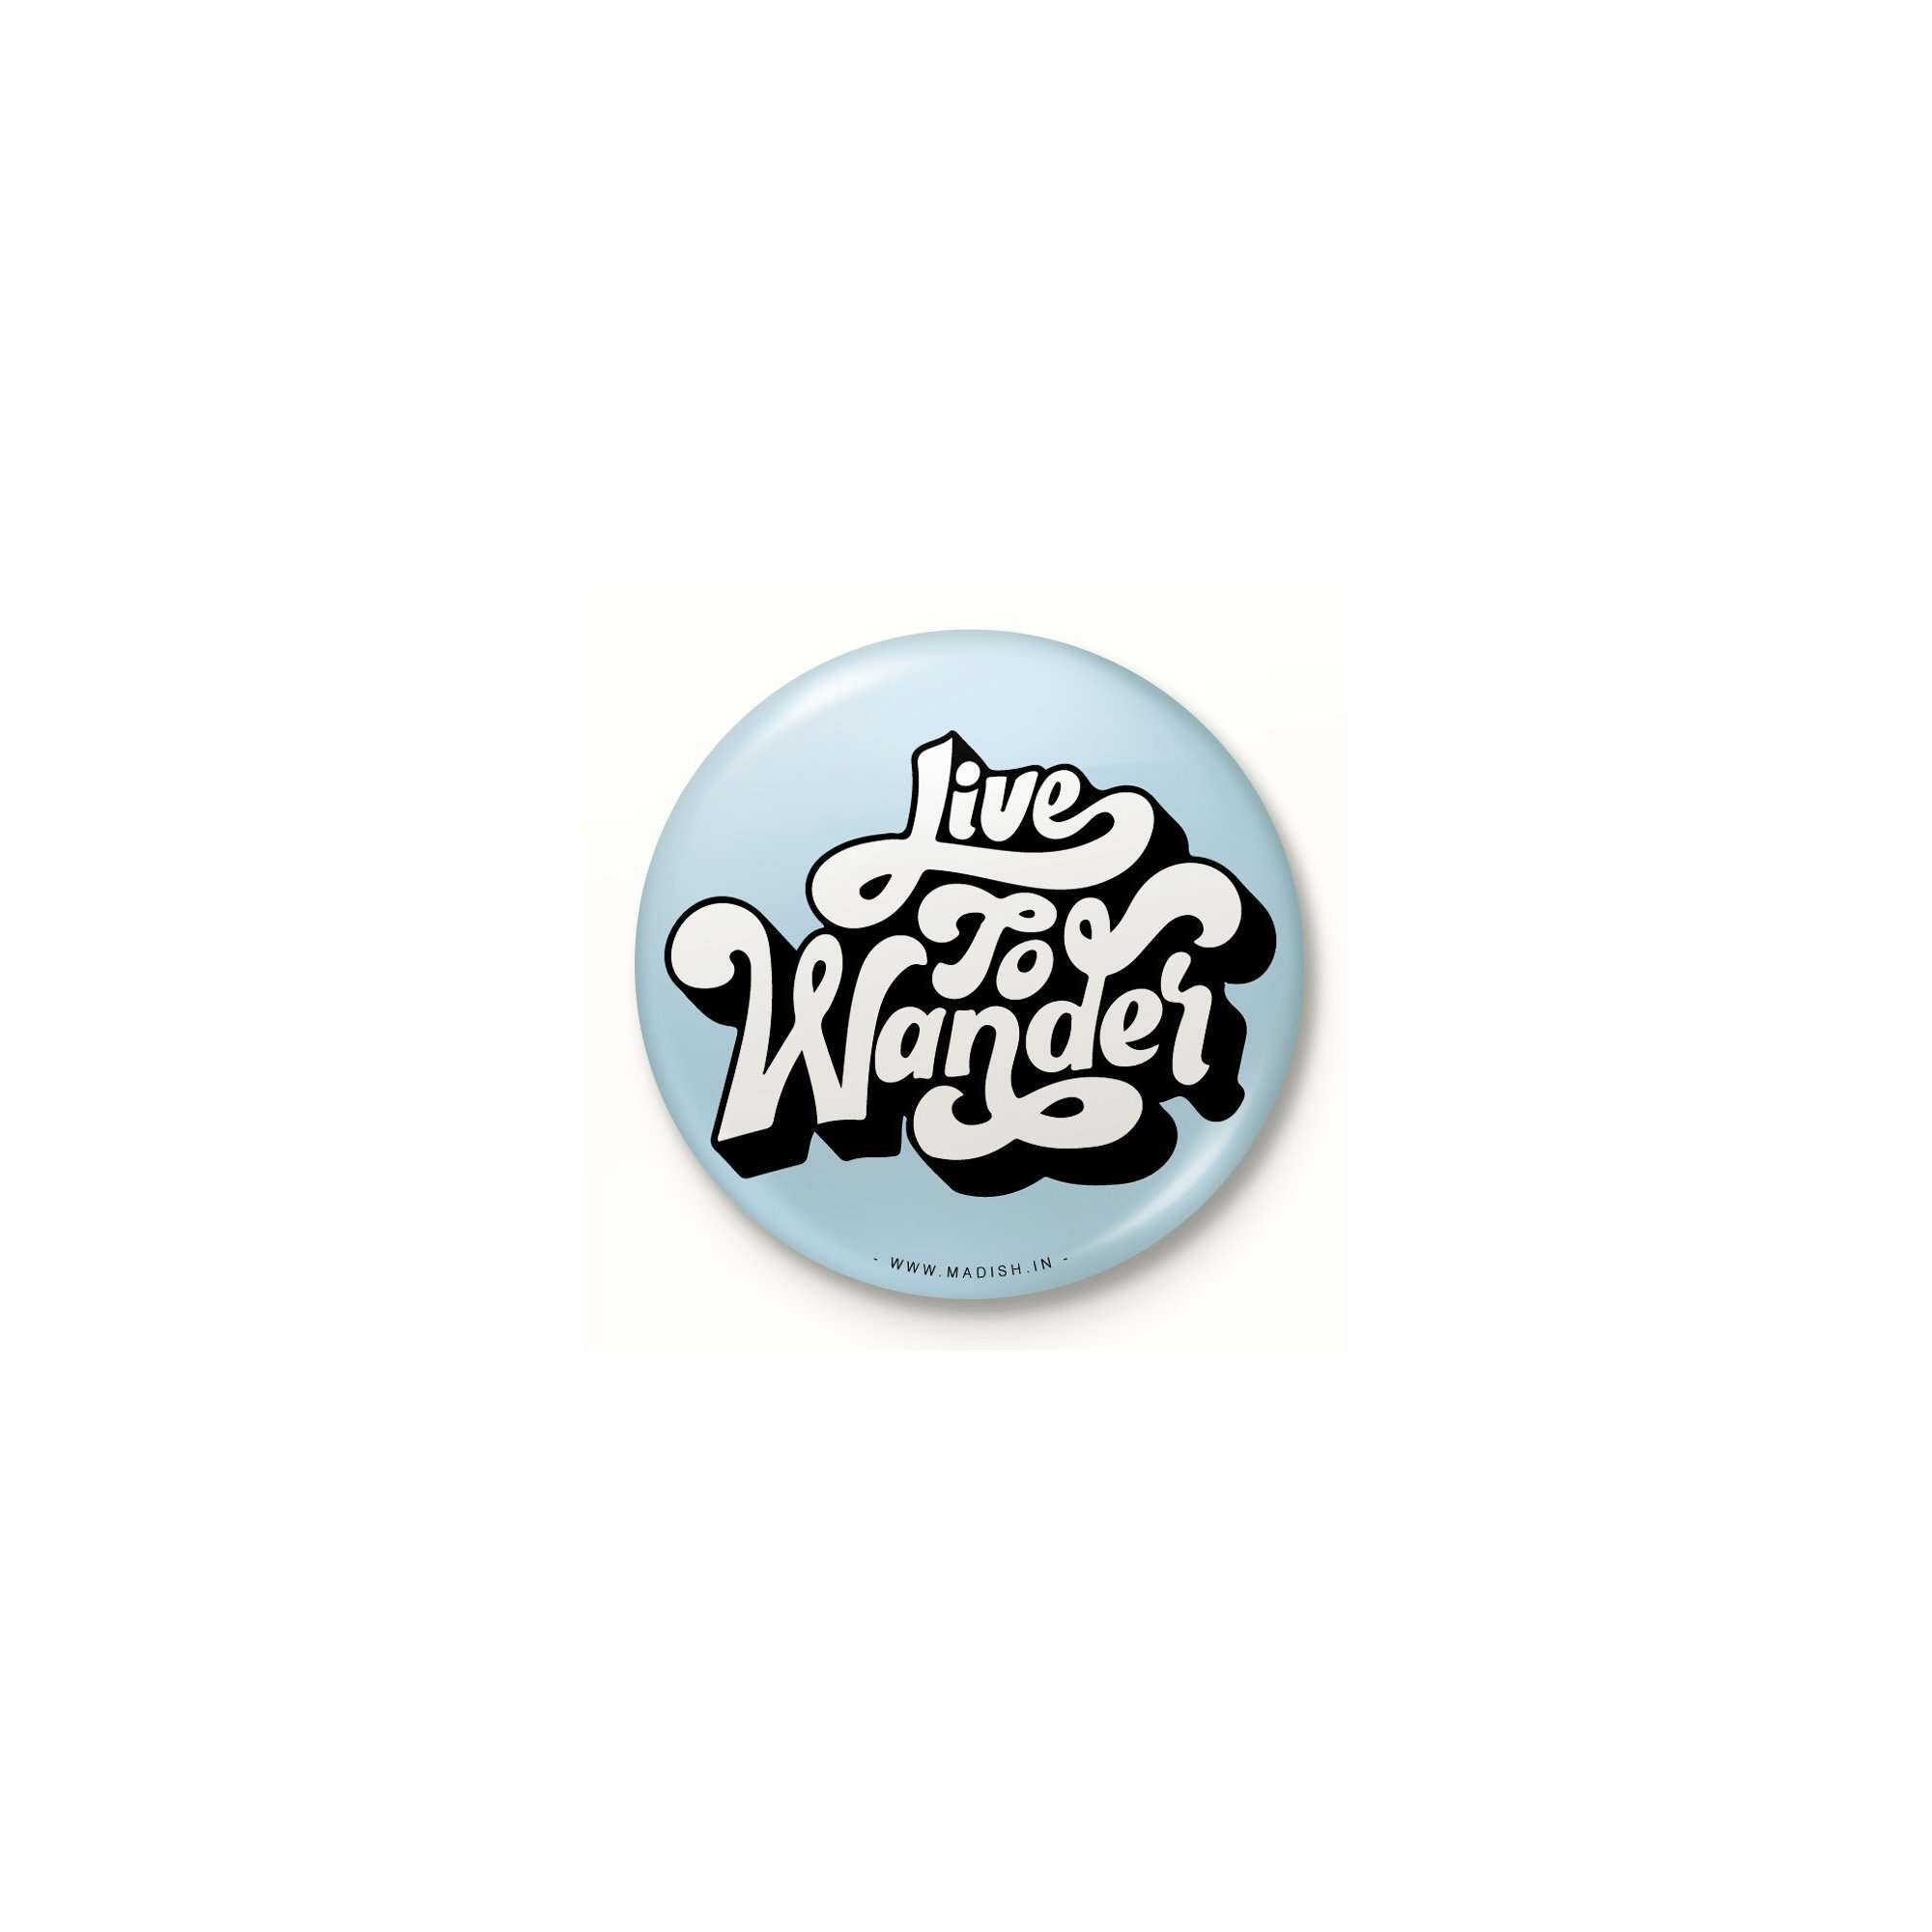 Live to Wander Button Badge Accessories Madish